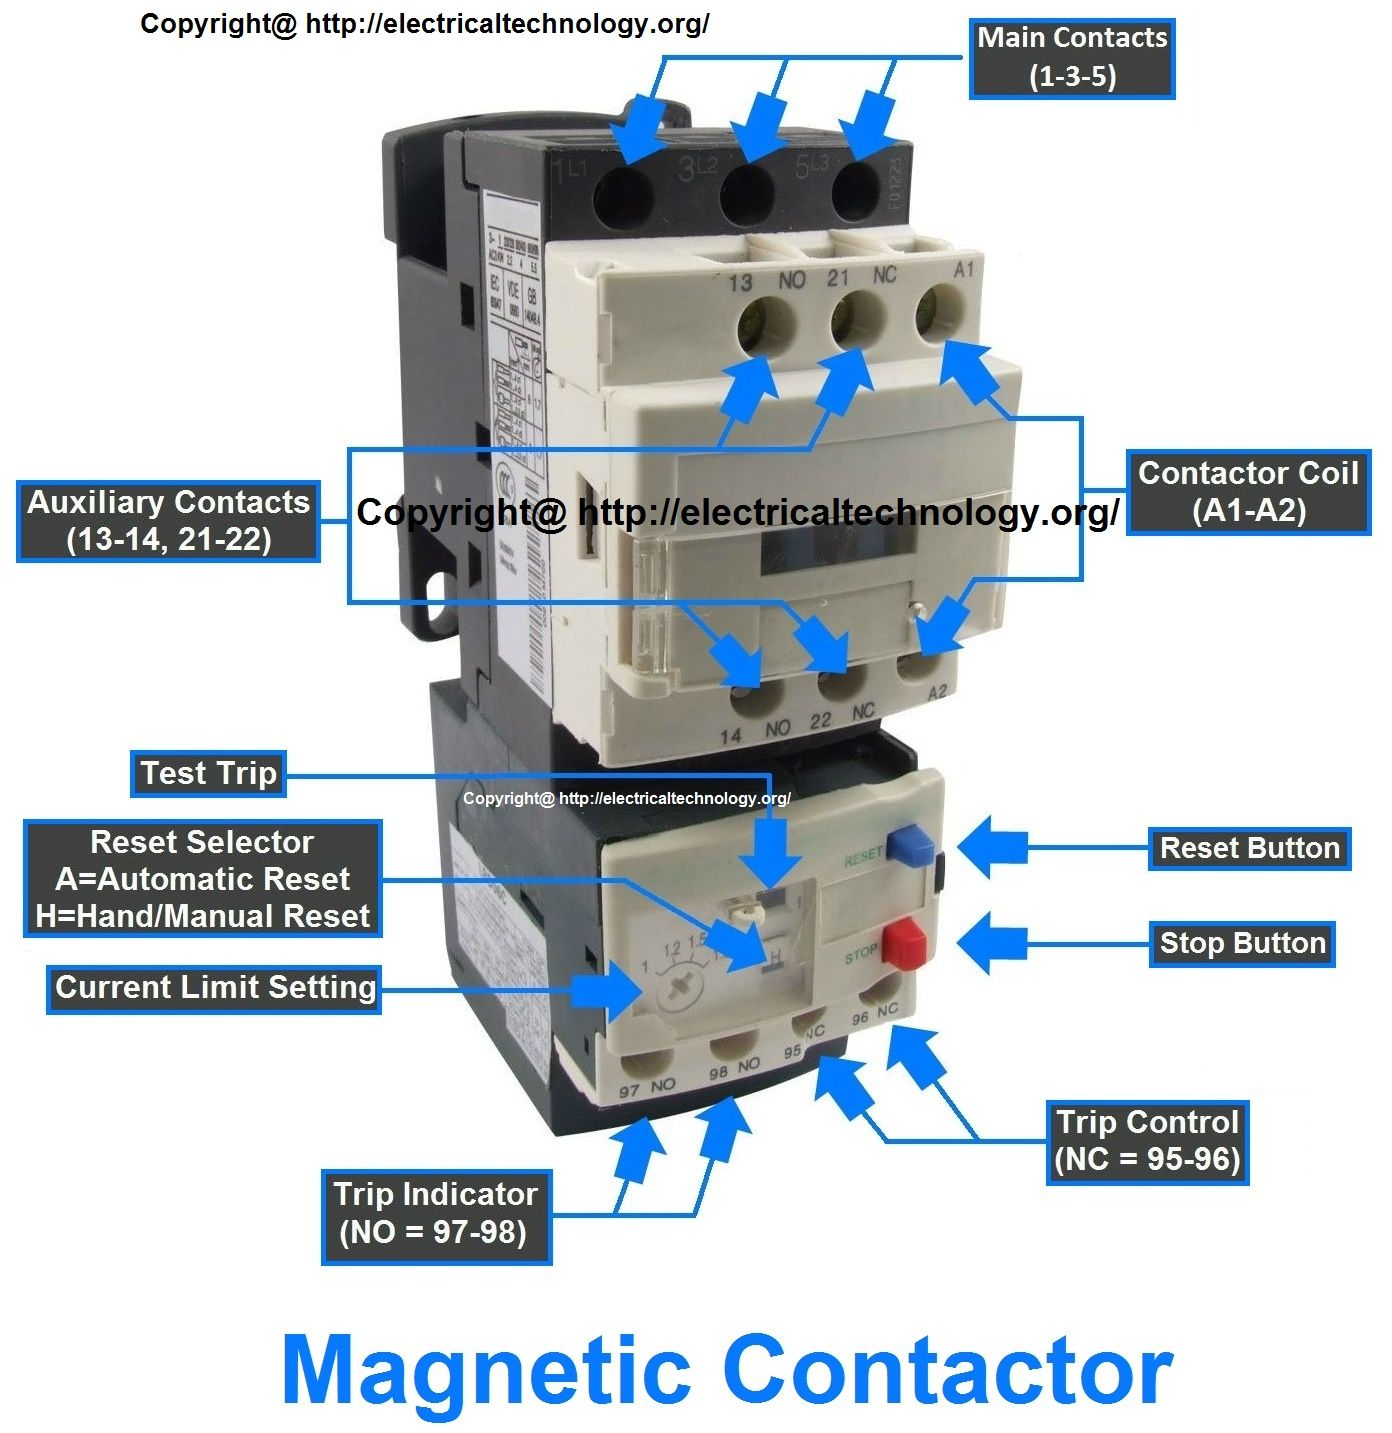 f465dee1d283abe0d5eeb4d3a000fdd3 rated characteristics of electrical contactors electro magnetic electrical contactor wiring diagram at aneh.co